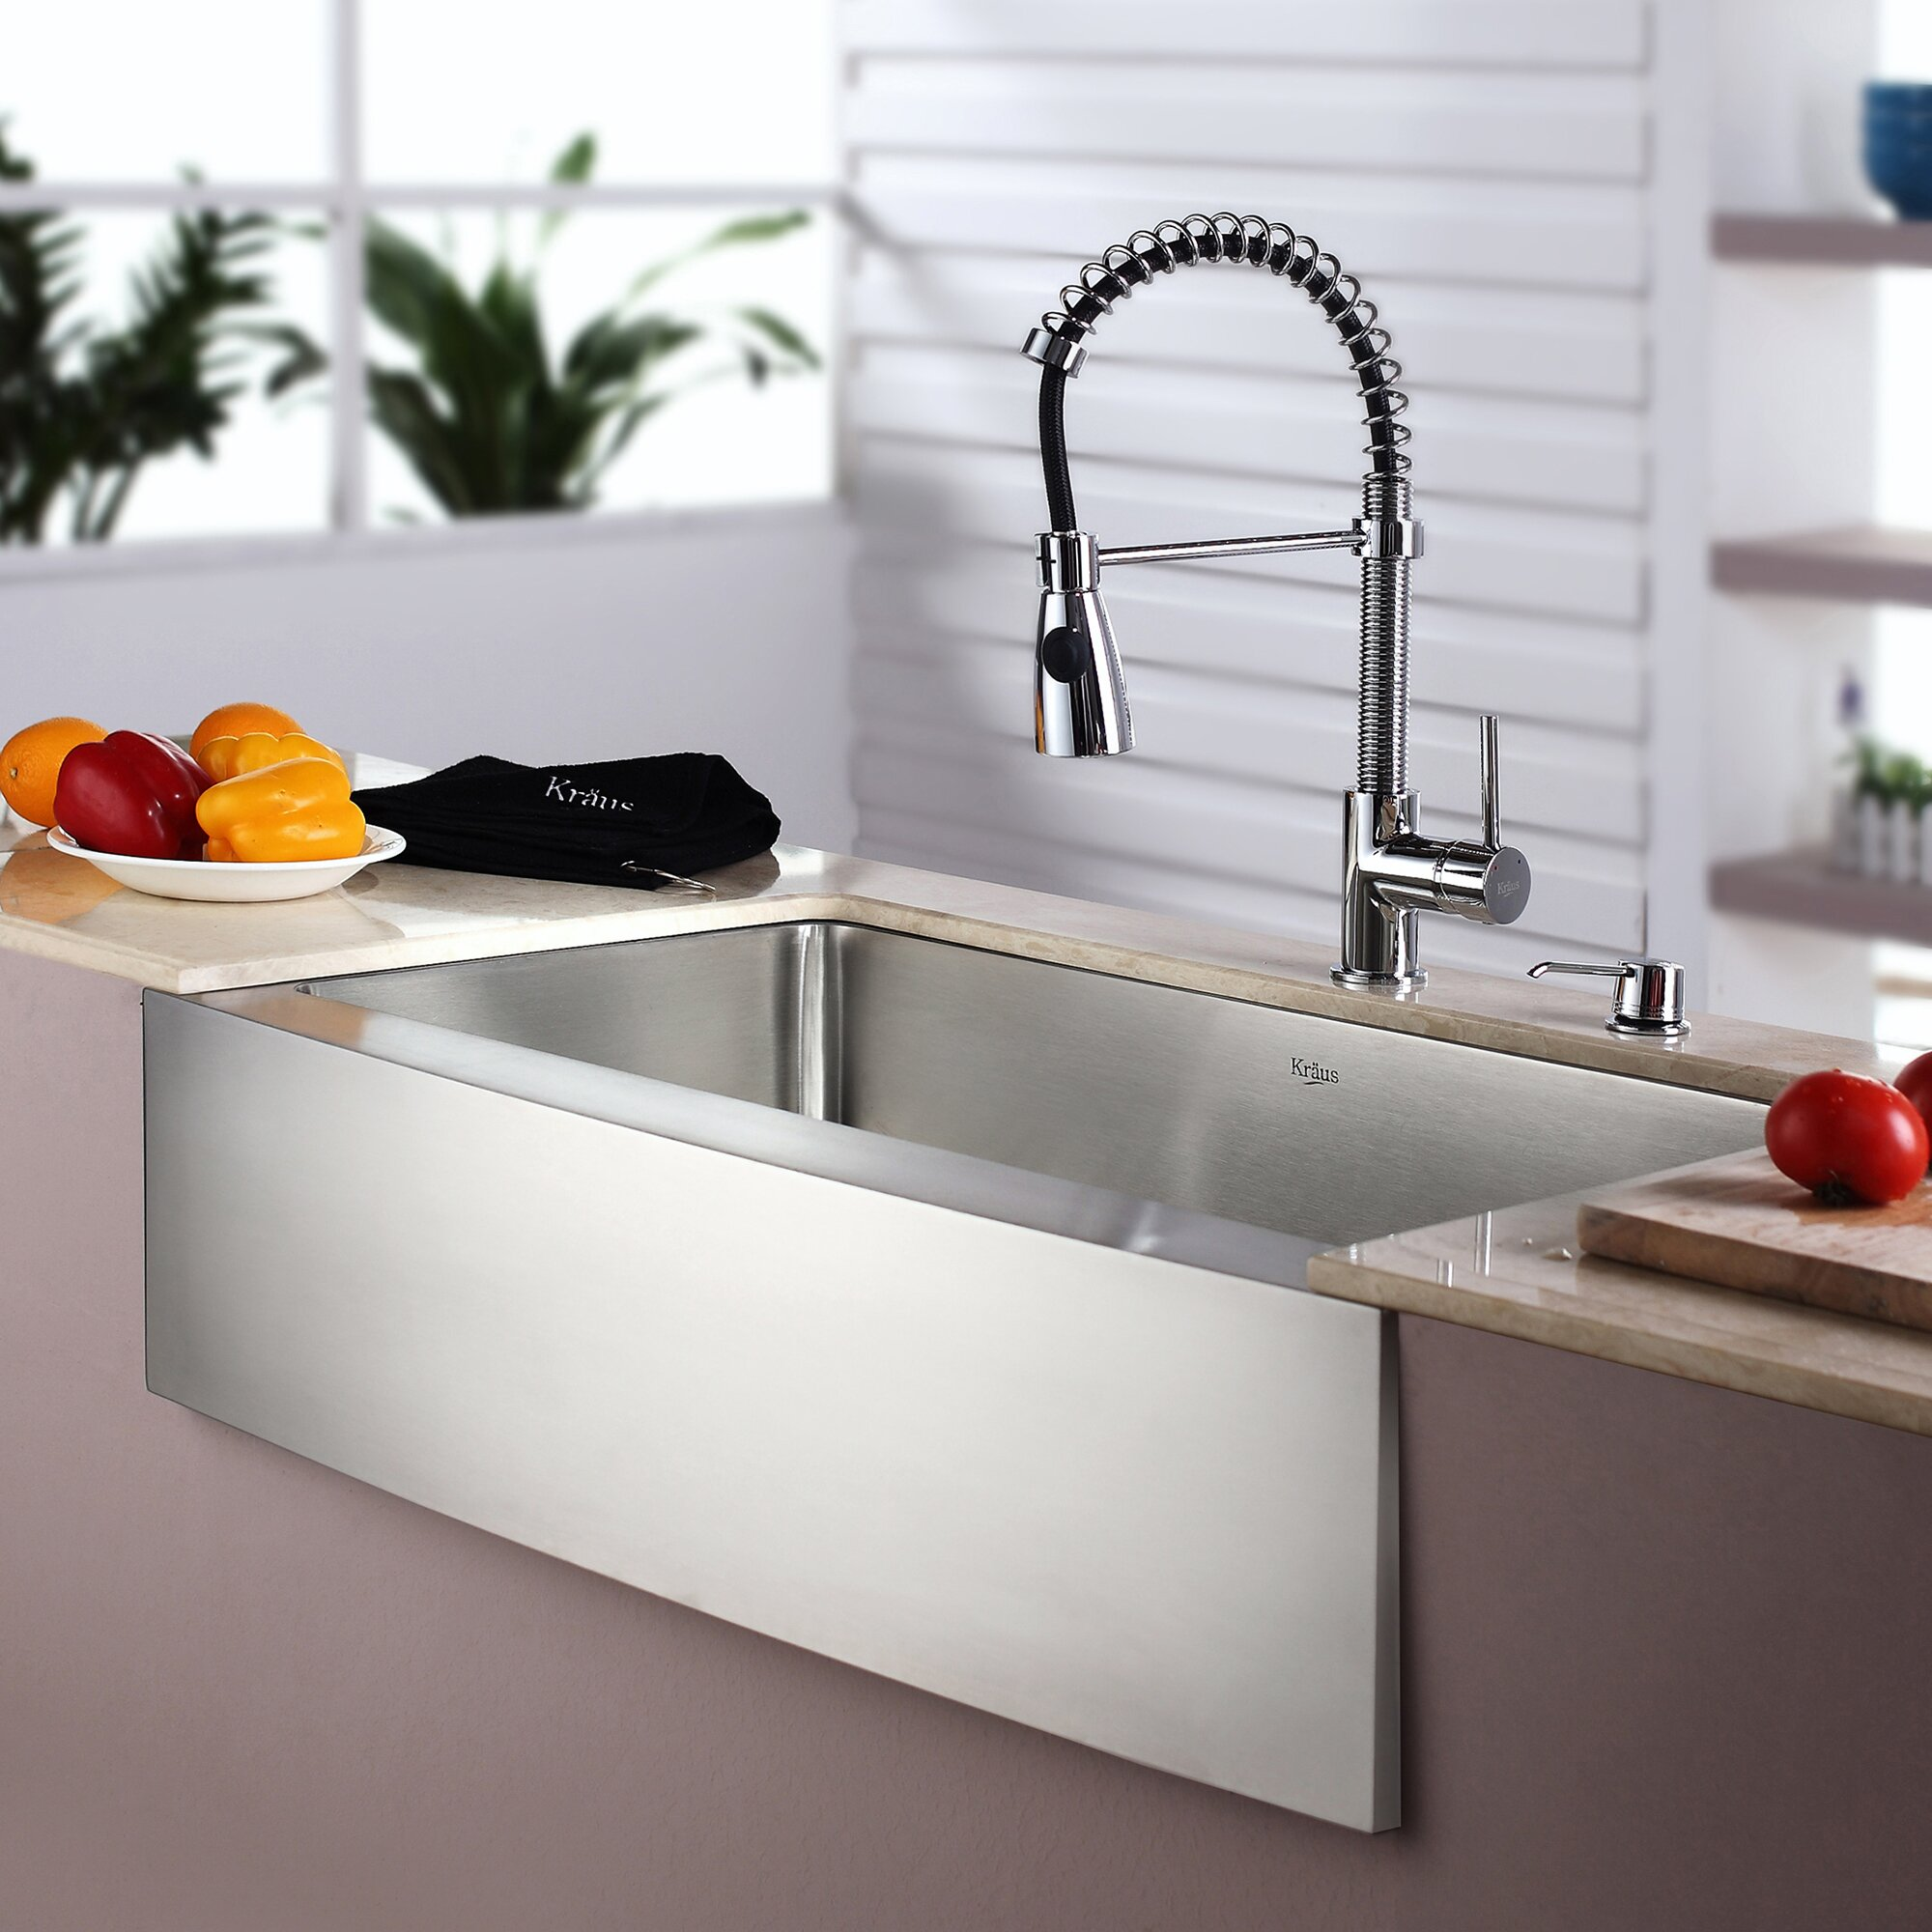 Best Stainless Farmhouse Sink : ... Farmhouse Stainless Steel Kitchen Sink with Faucet & Reviews Wayfair